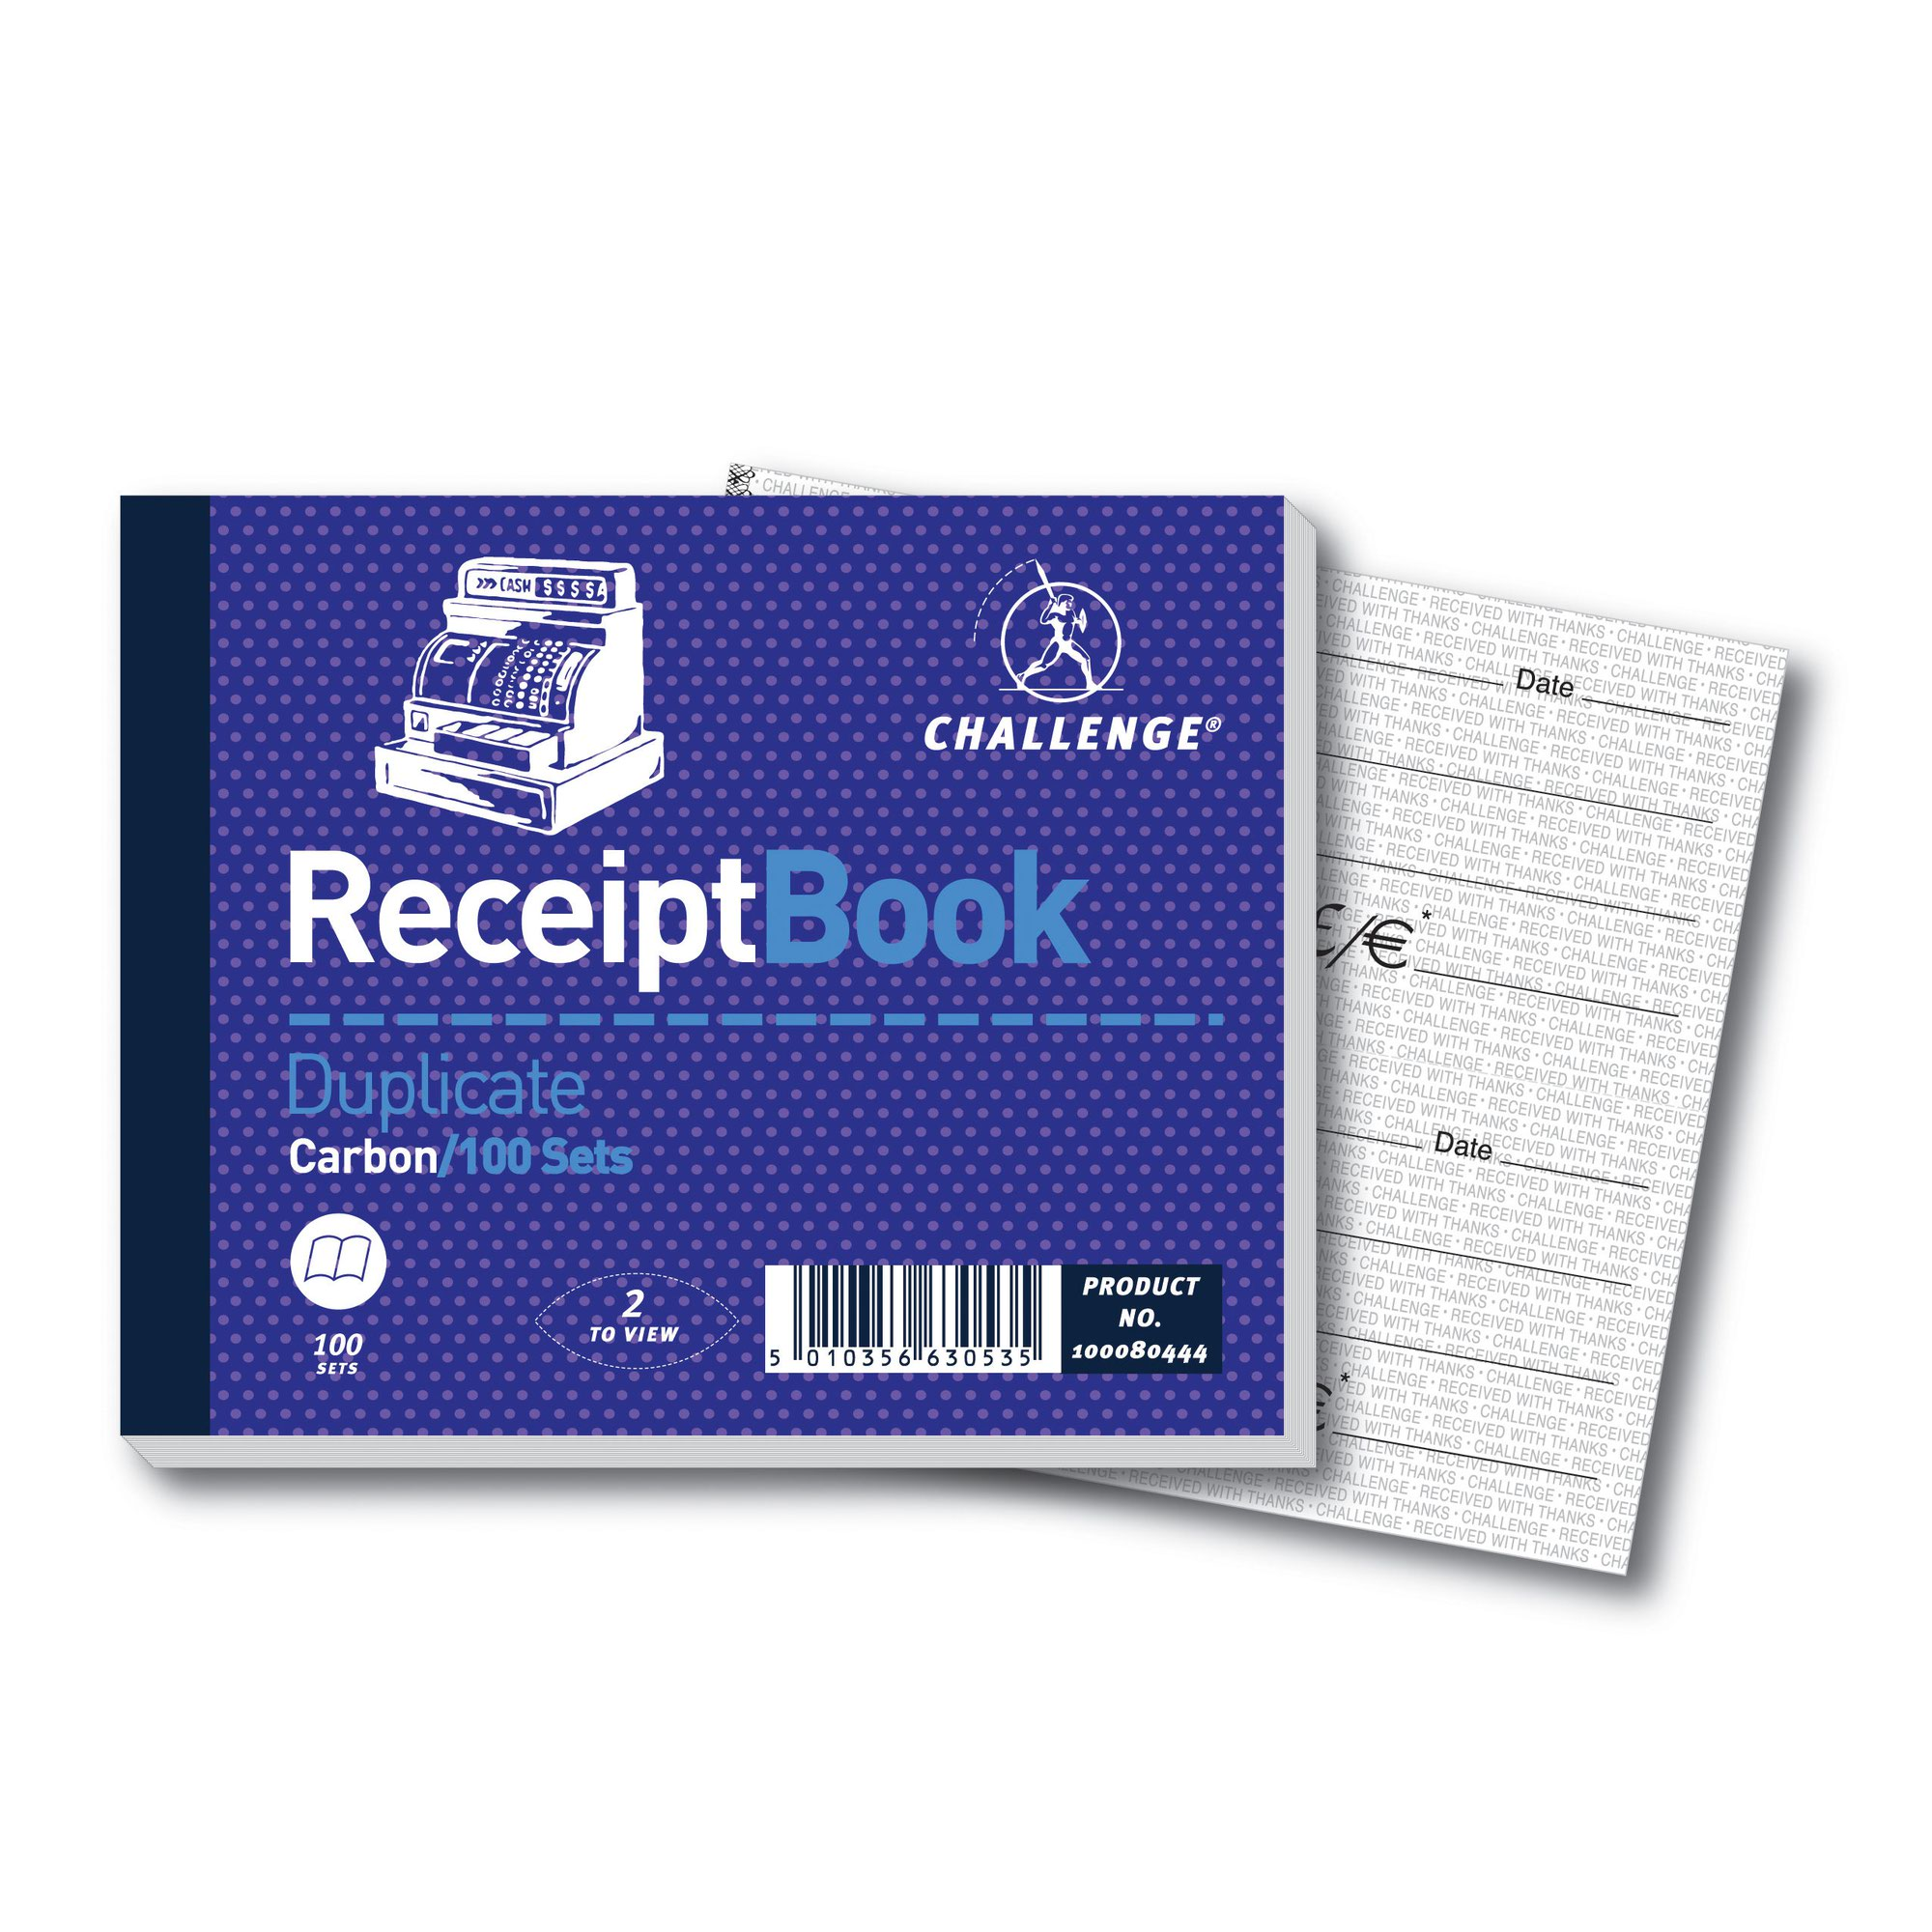 Image for Challenge Duplicate Book 105x130mm Receipt 100sets 100080444